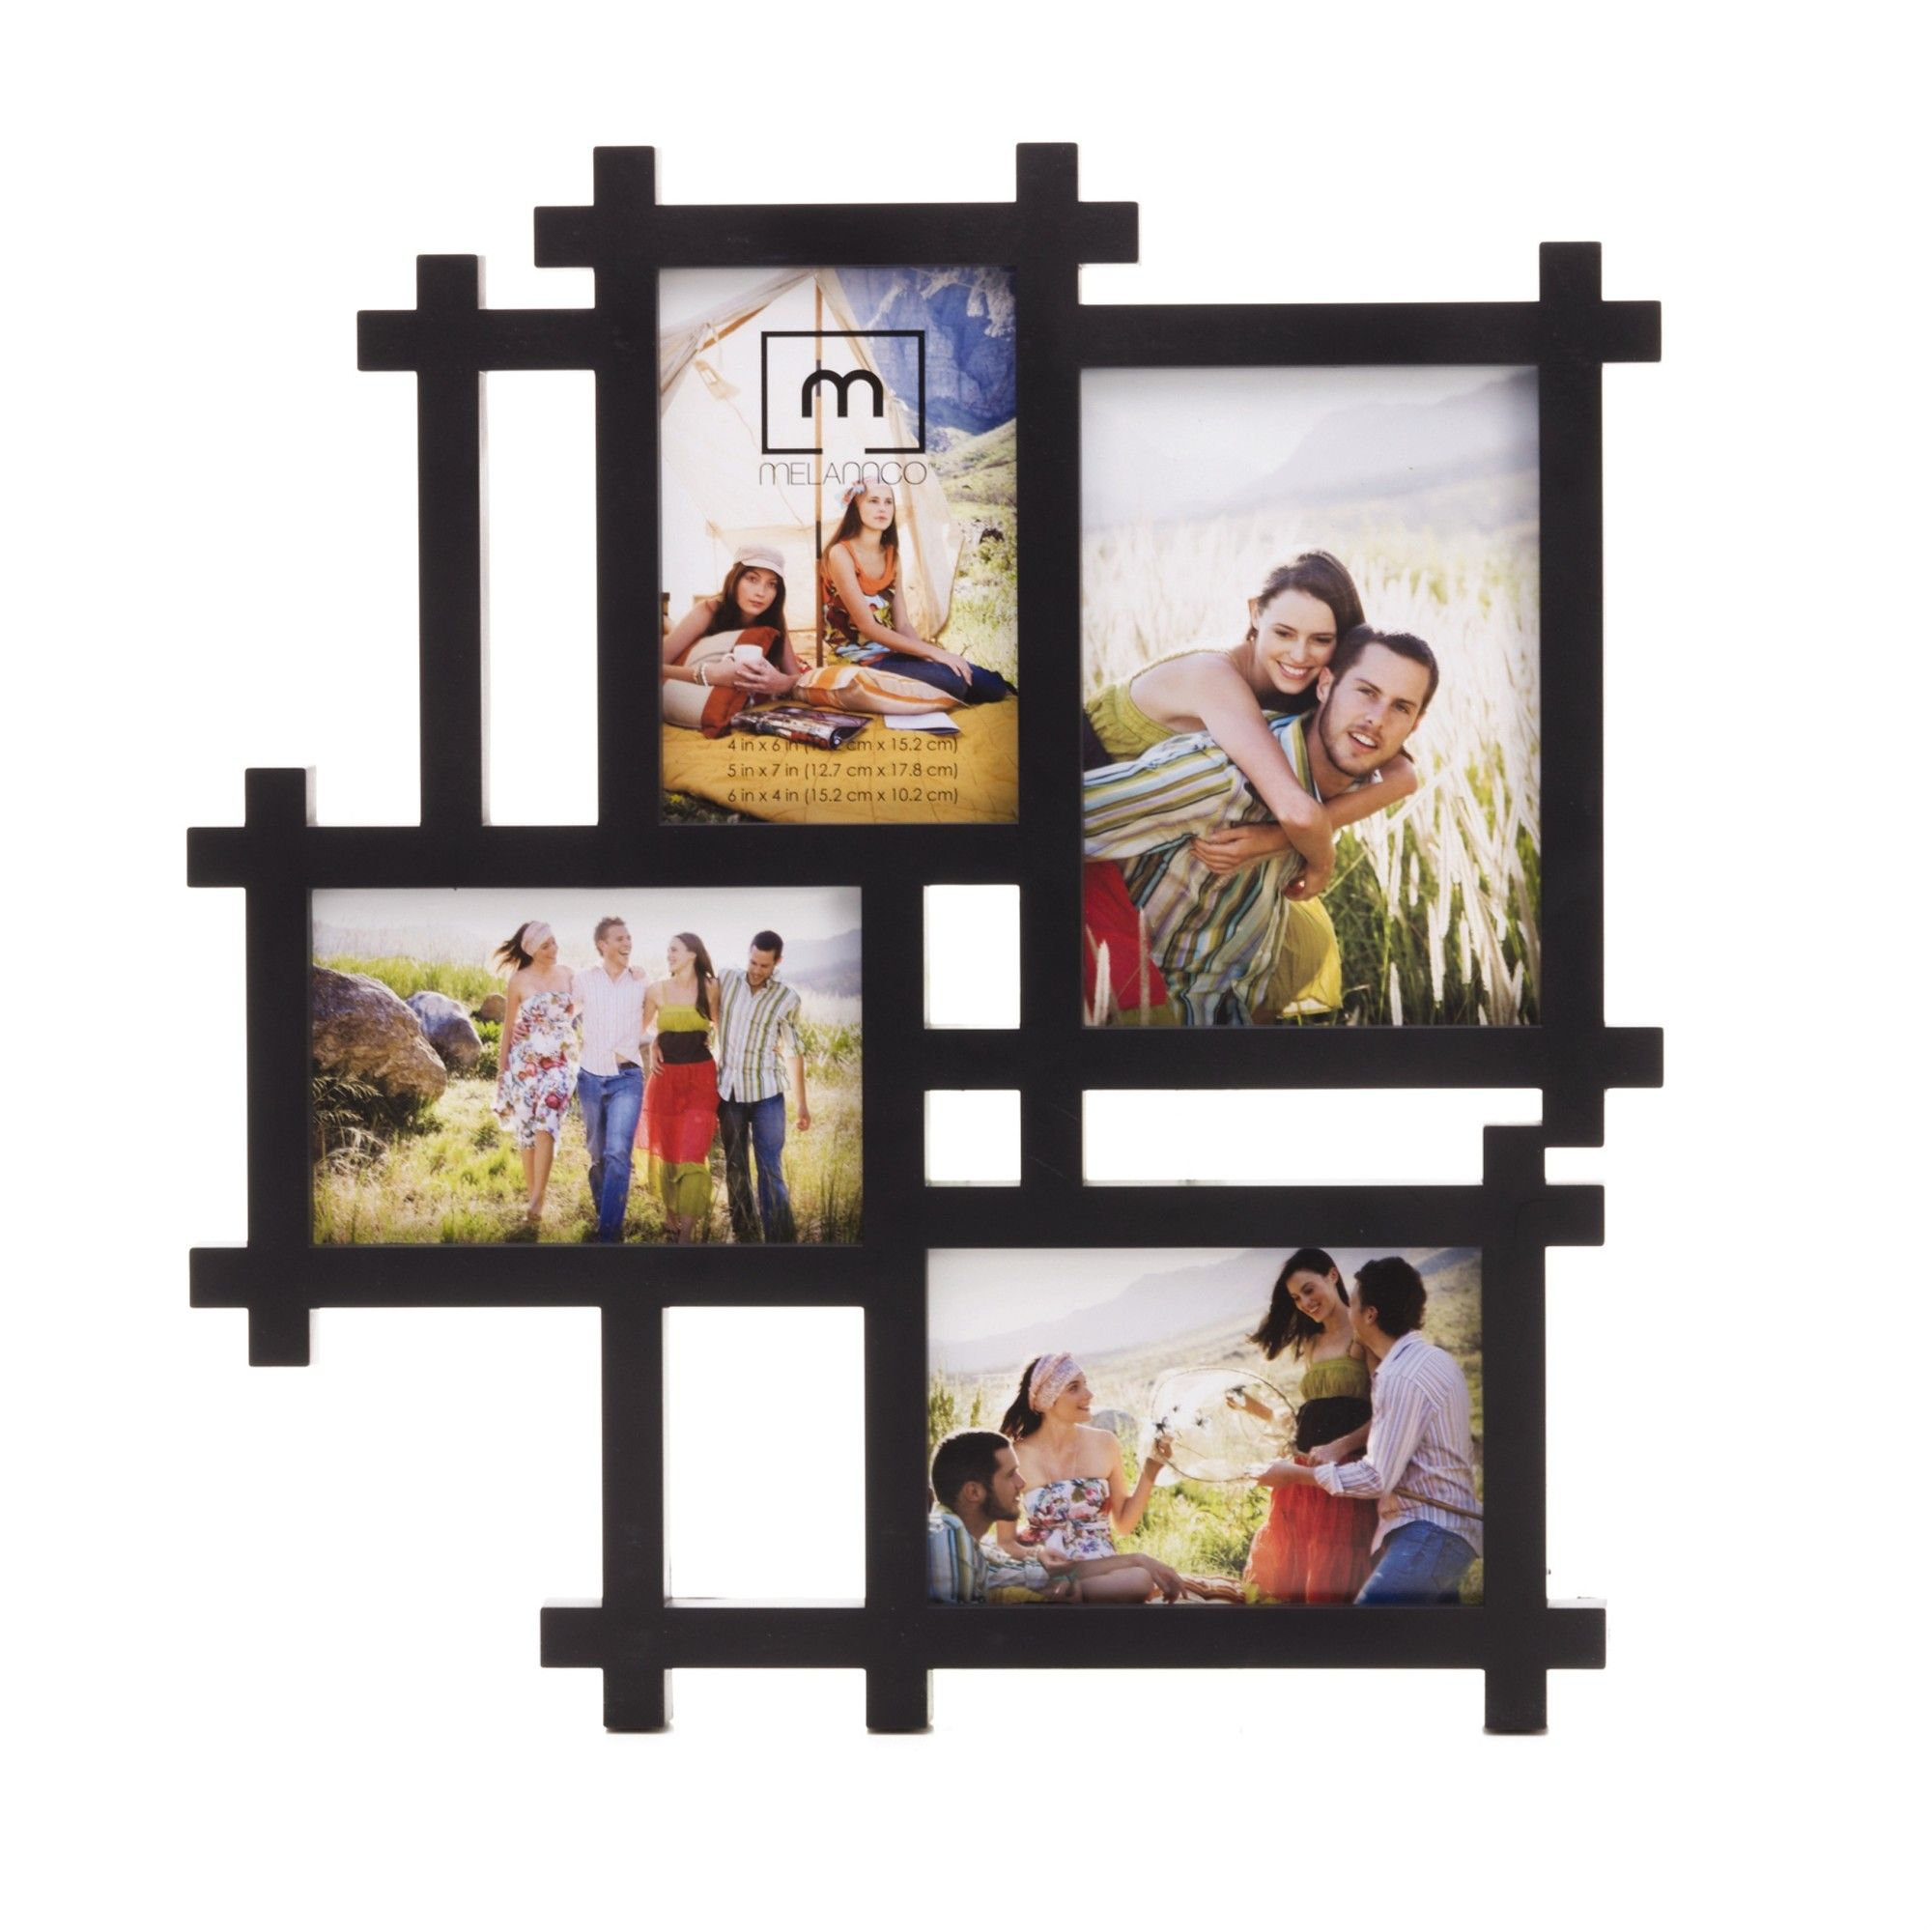 4 Opening Lattice Collage Frame Collage Frames Frame Wall Collage Framed Photo Collage